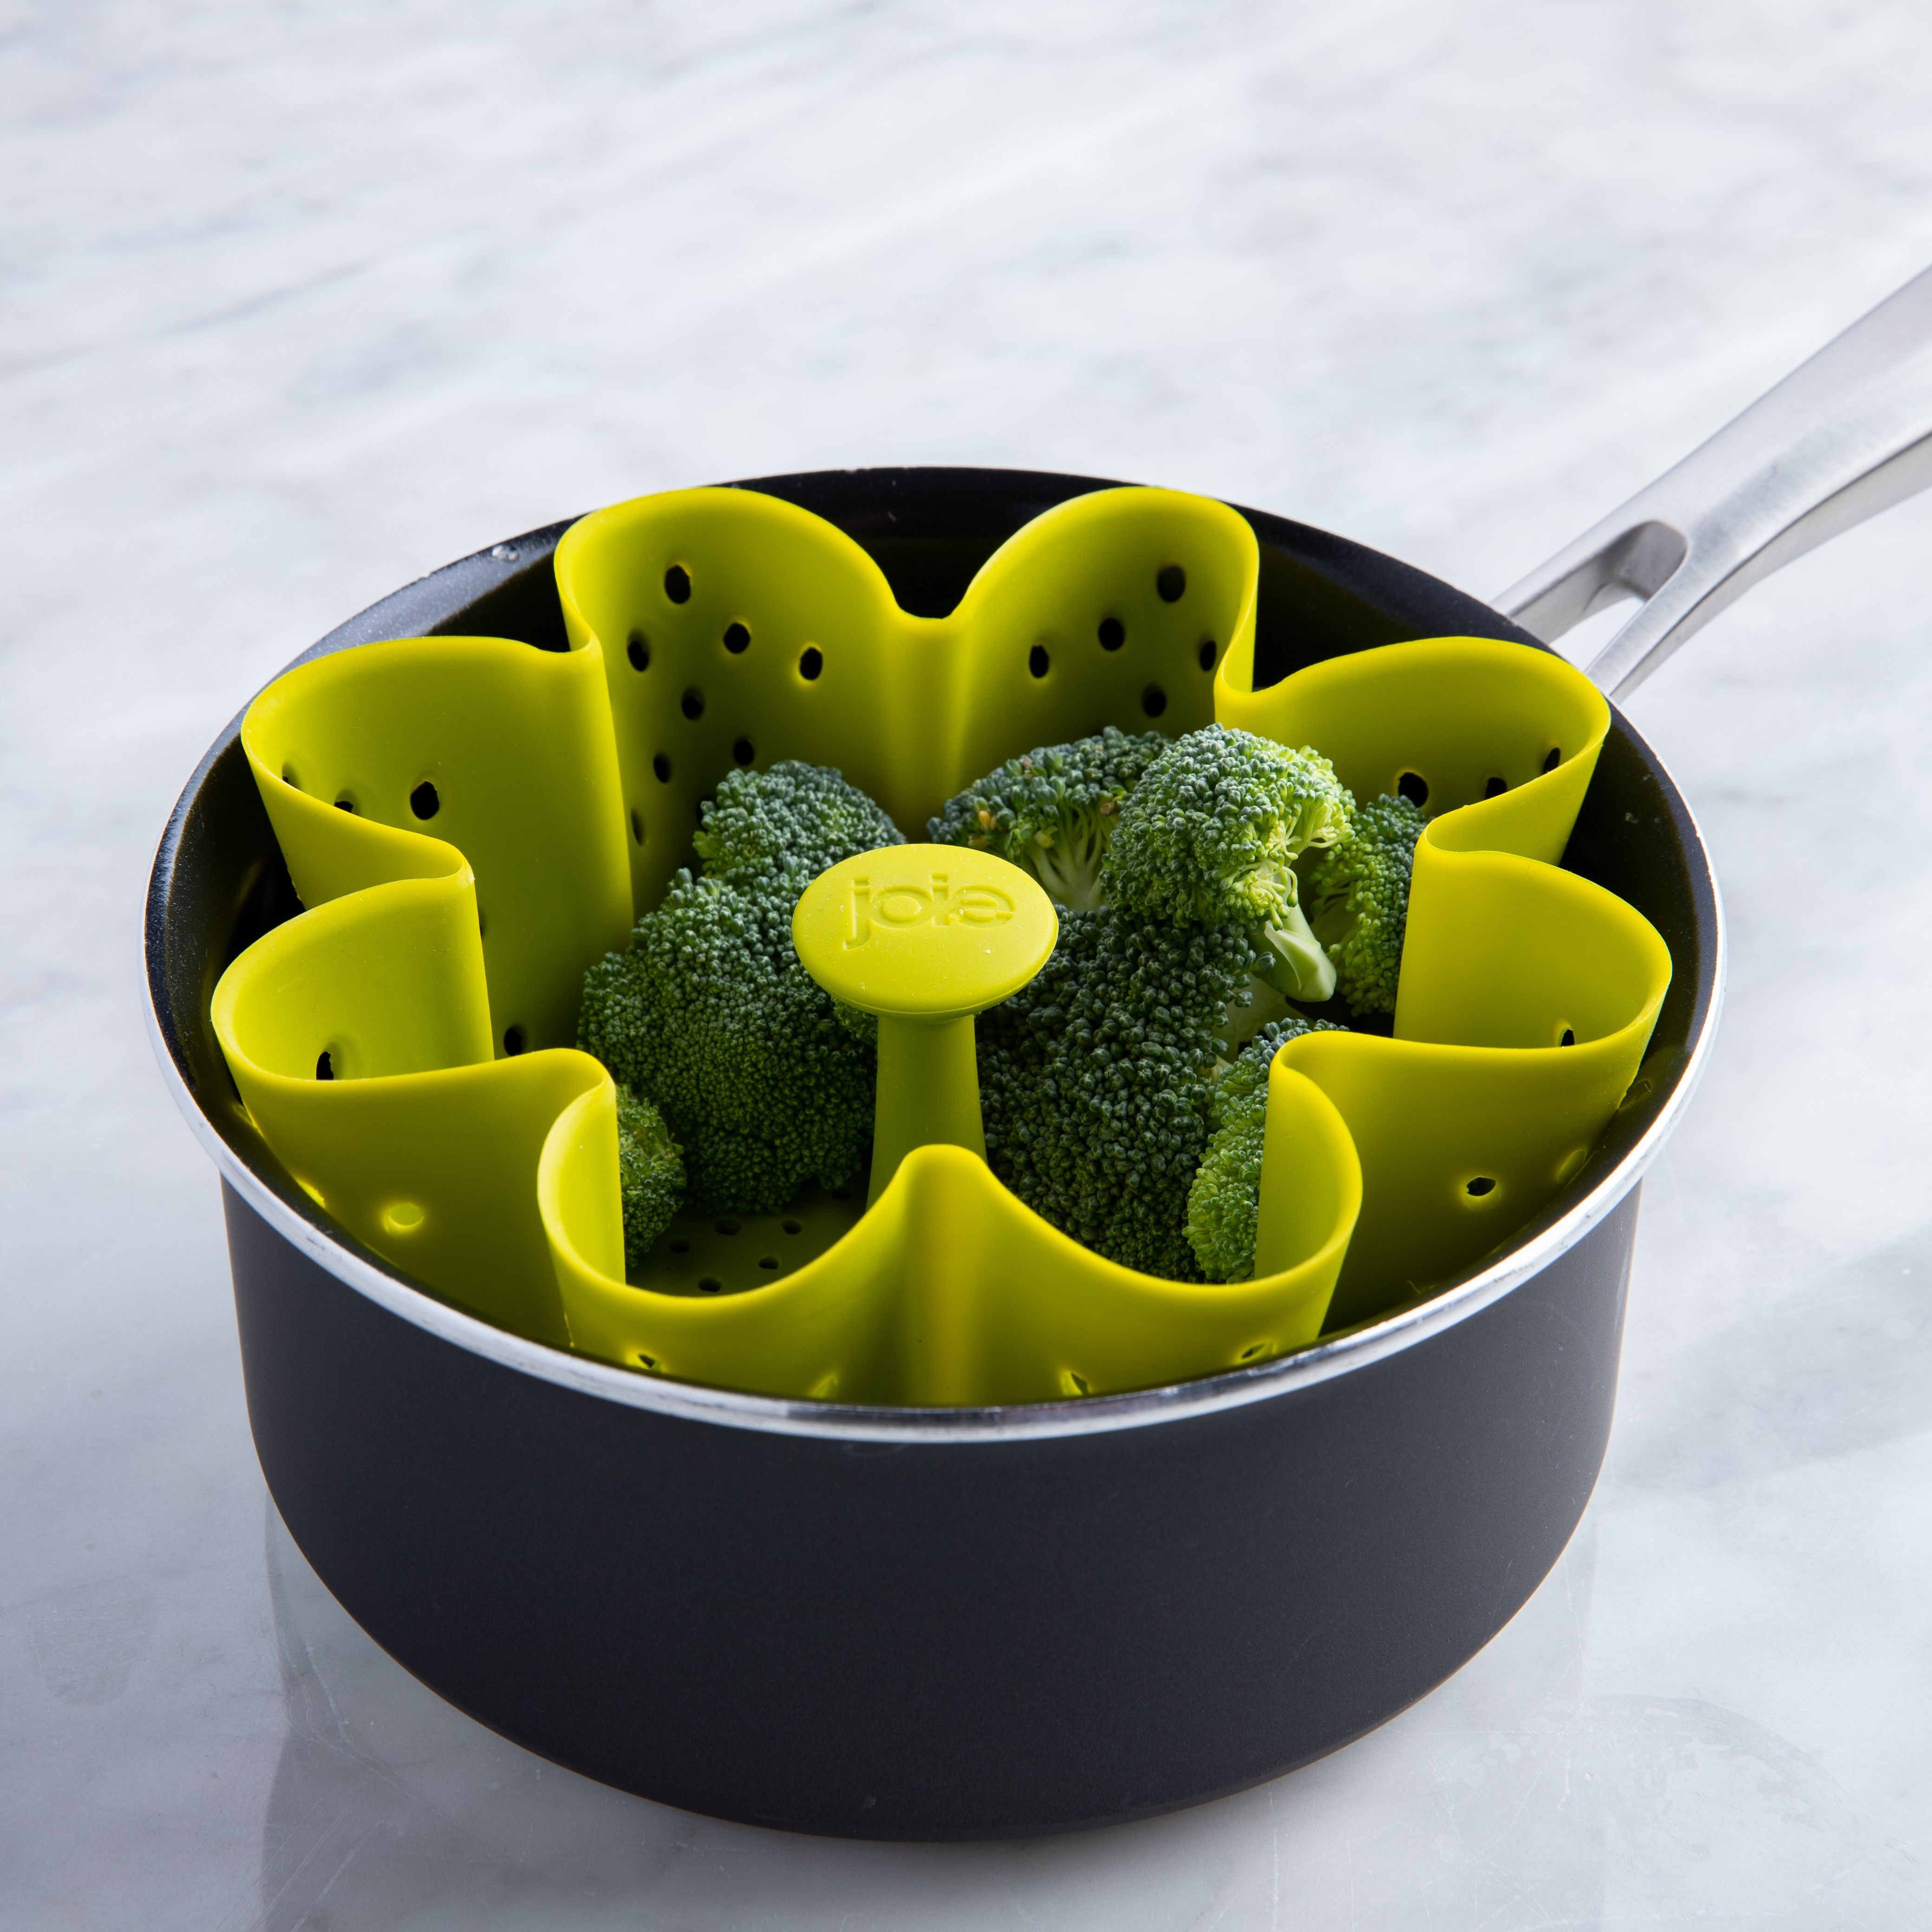 green silicone steamer filled with broccoli inside a pot